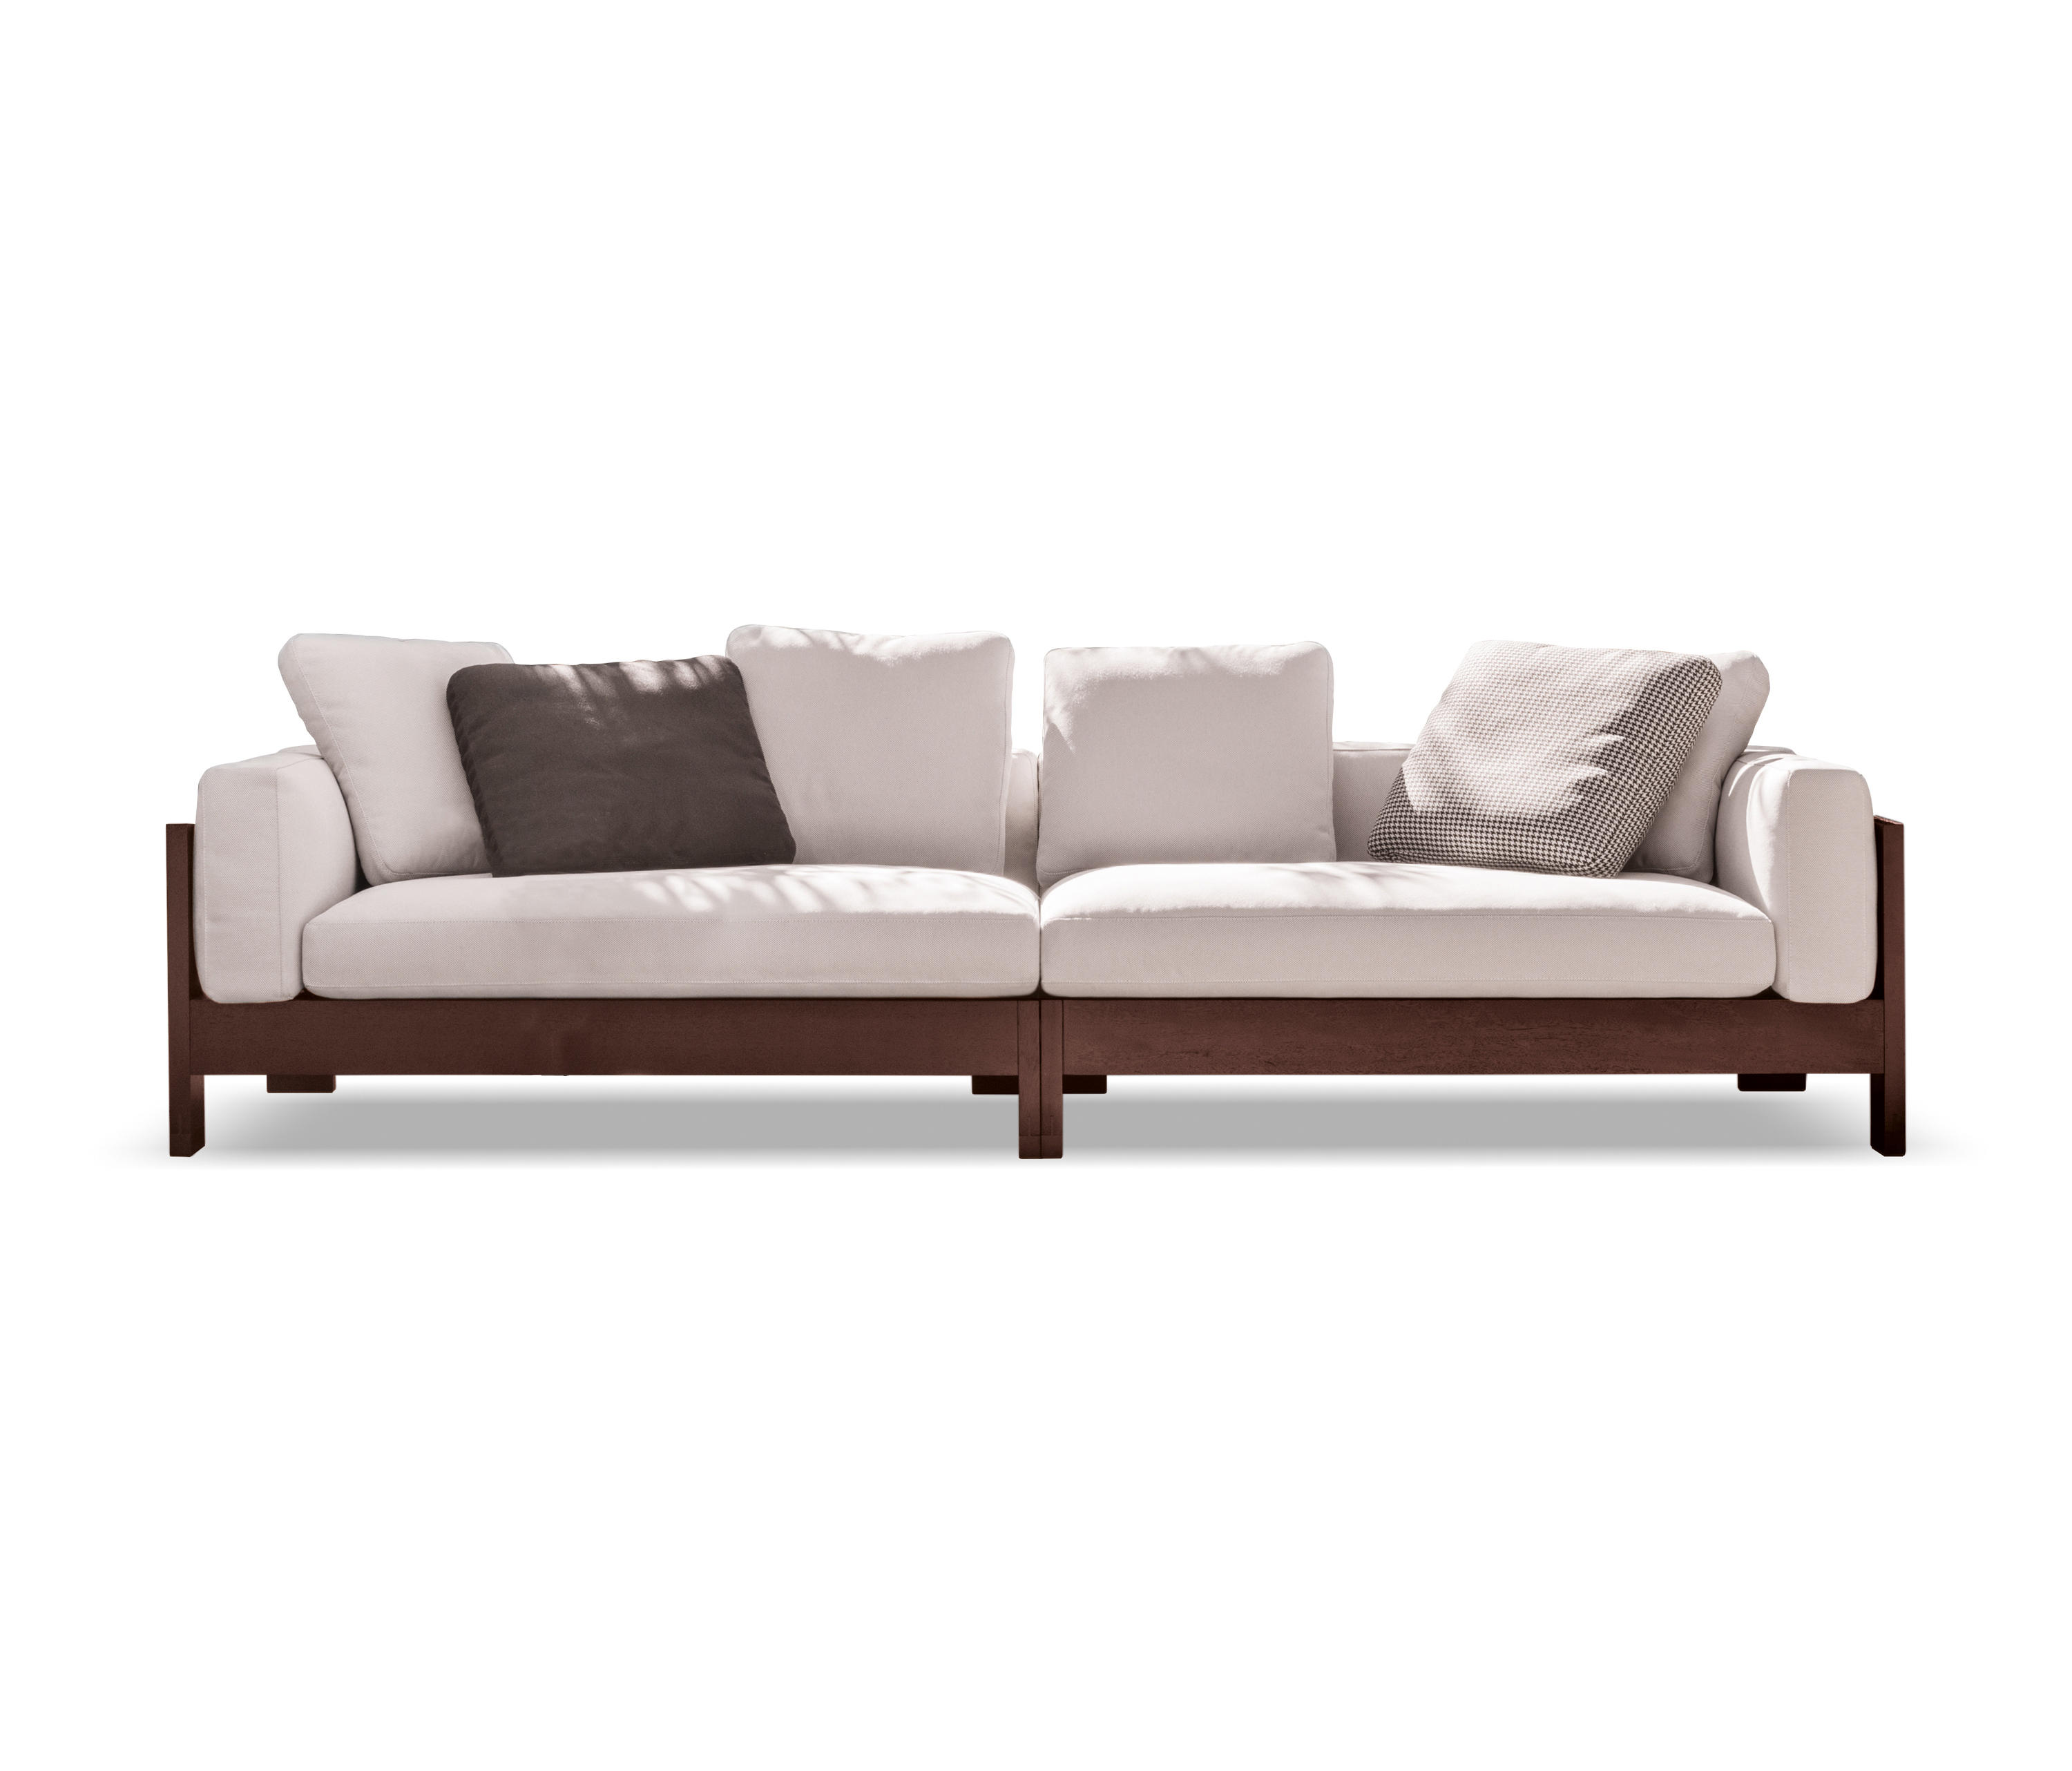 casa italy sofa singapore single bed philippines minotti products collections and more architonic alison outdoor